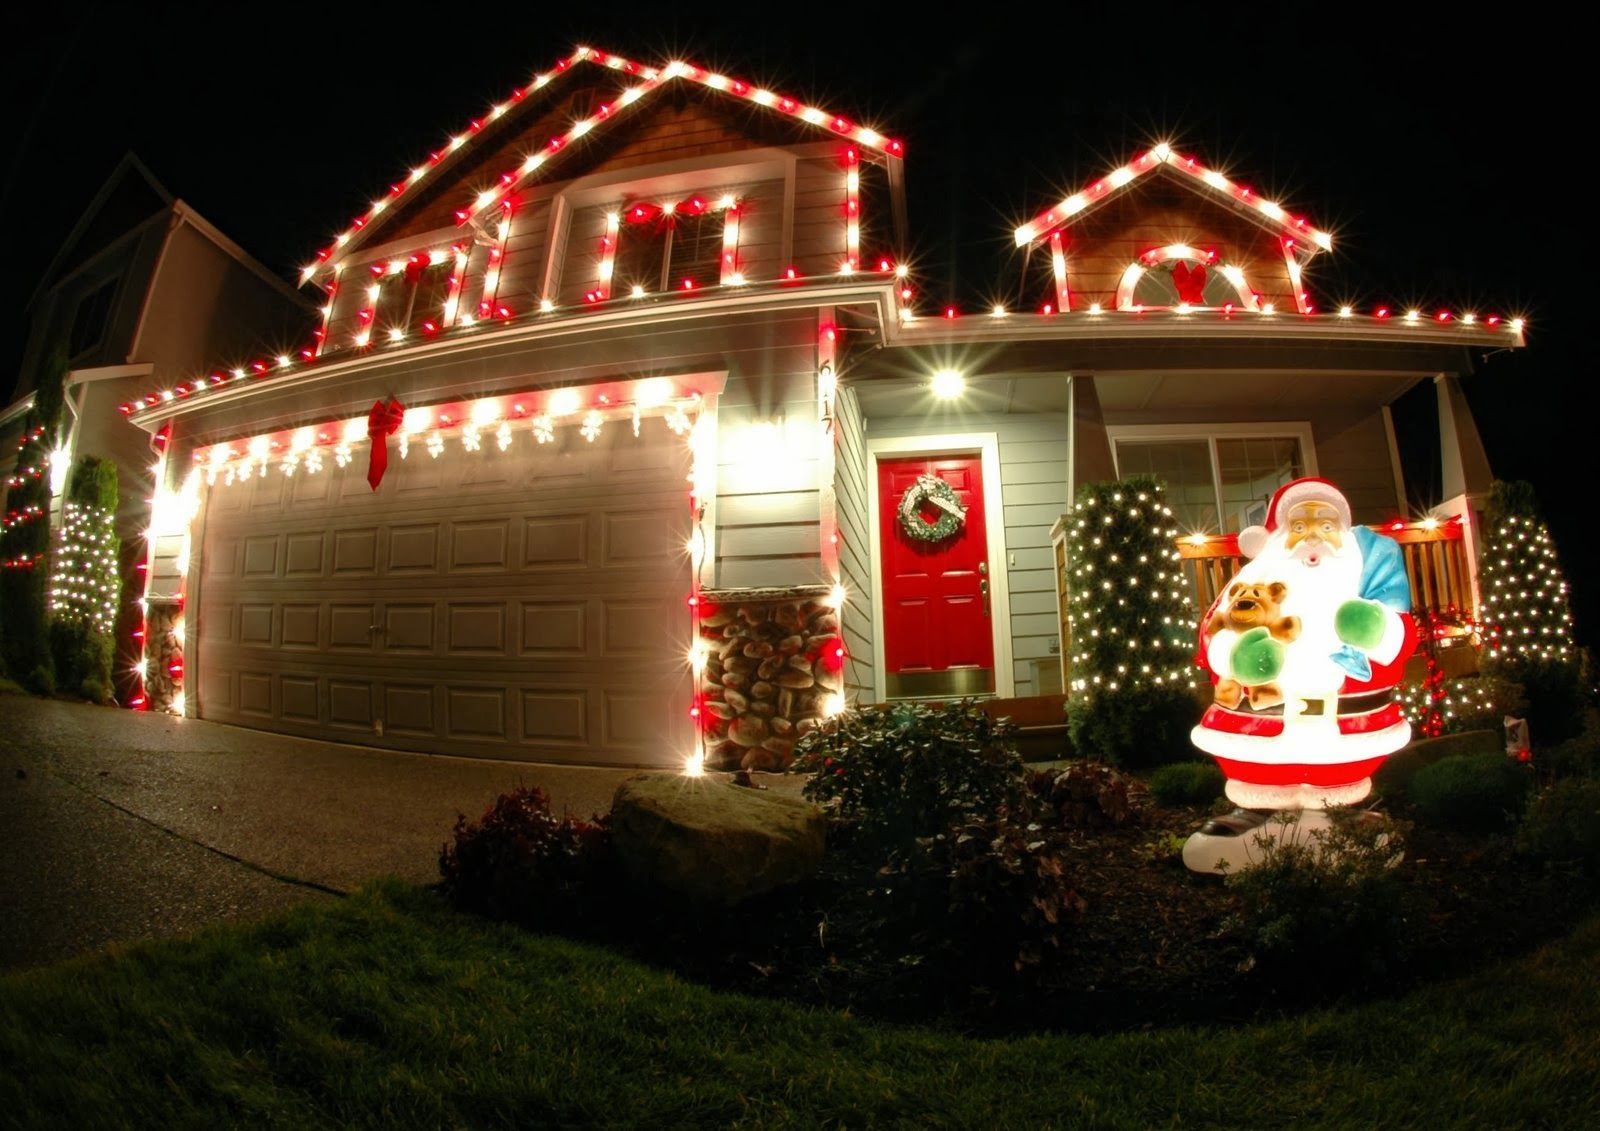 Outdoor Light Ideas Christmas Exterior Xmas Light Ideas Red And White Colored Outdoor